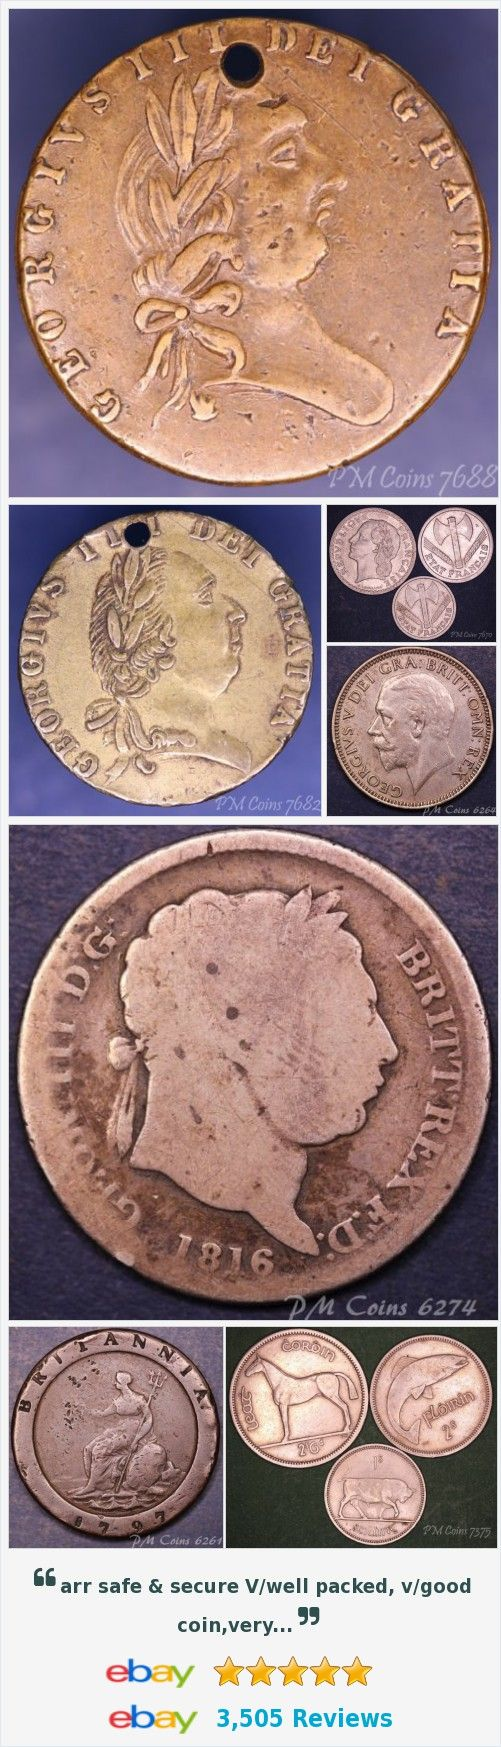 Ireland - Coins and Banknotes, UK Coins - Shillings items in PM Coin Shop store on eBay! http://stores.ebay.co.uk/PM-Coin-Shop/_i.html?rt=nc&_sid=1083015530&_trksid=p4634.c0.m14.l1513&_pgn=4